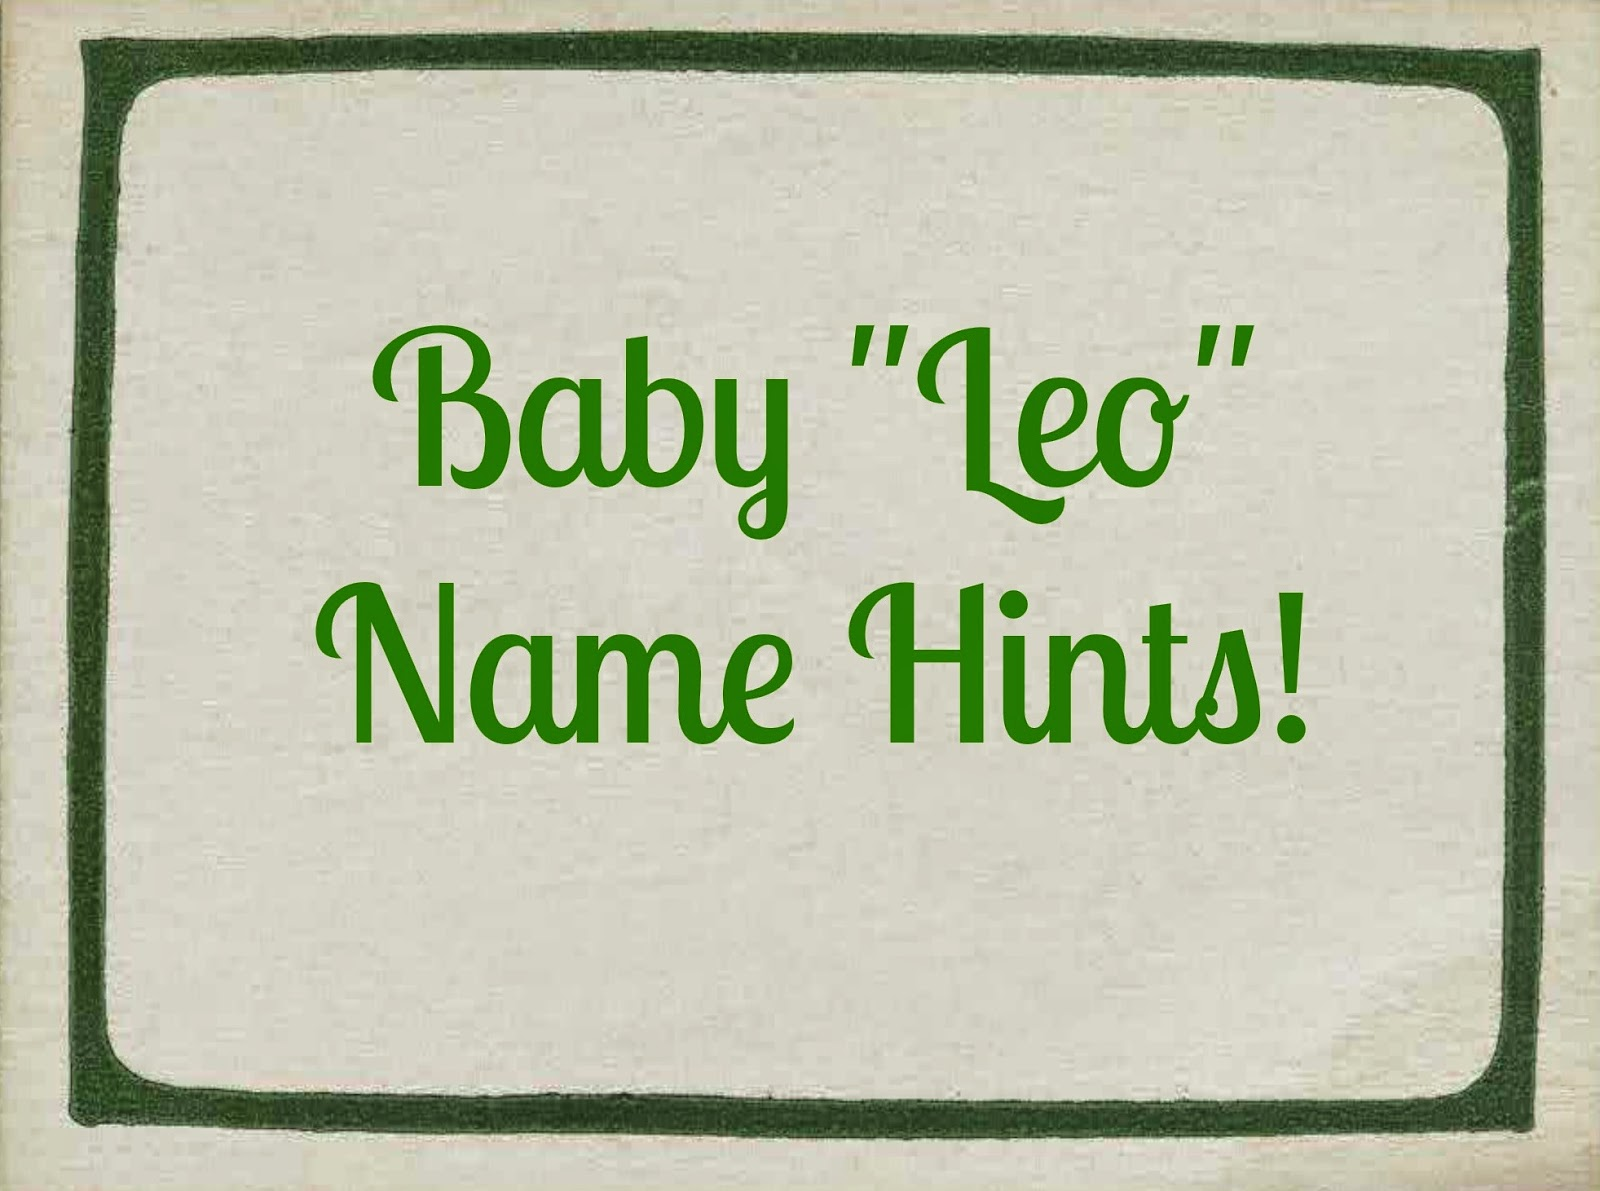 The Journey of Parenthood Leo Baby Name Hints – Announce Baby Name